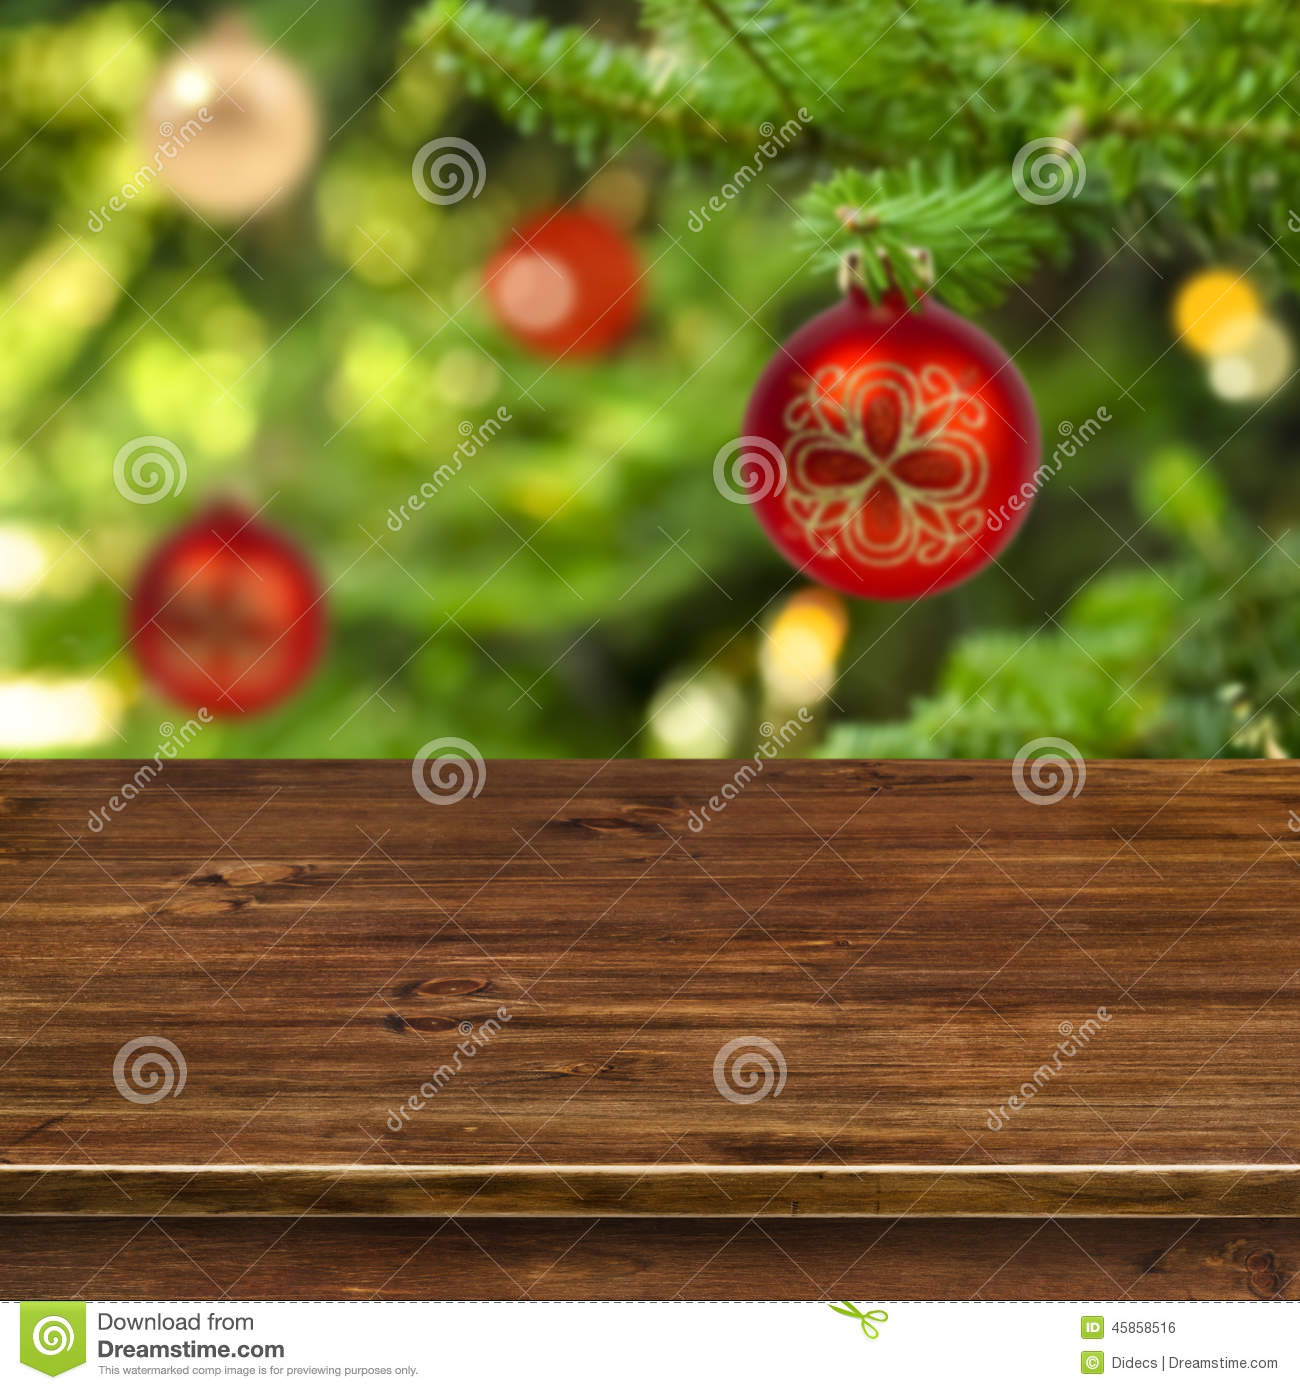 Wooden table on red Christmas ball background